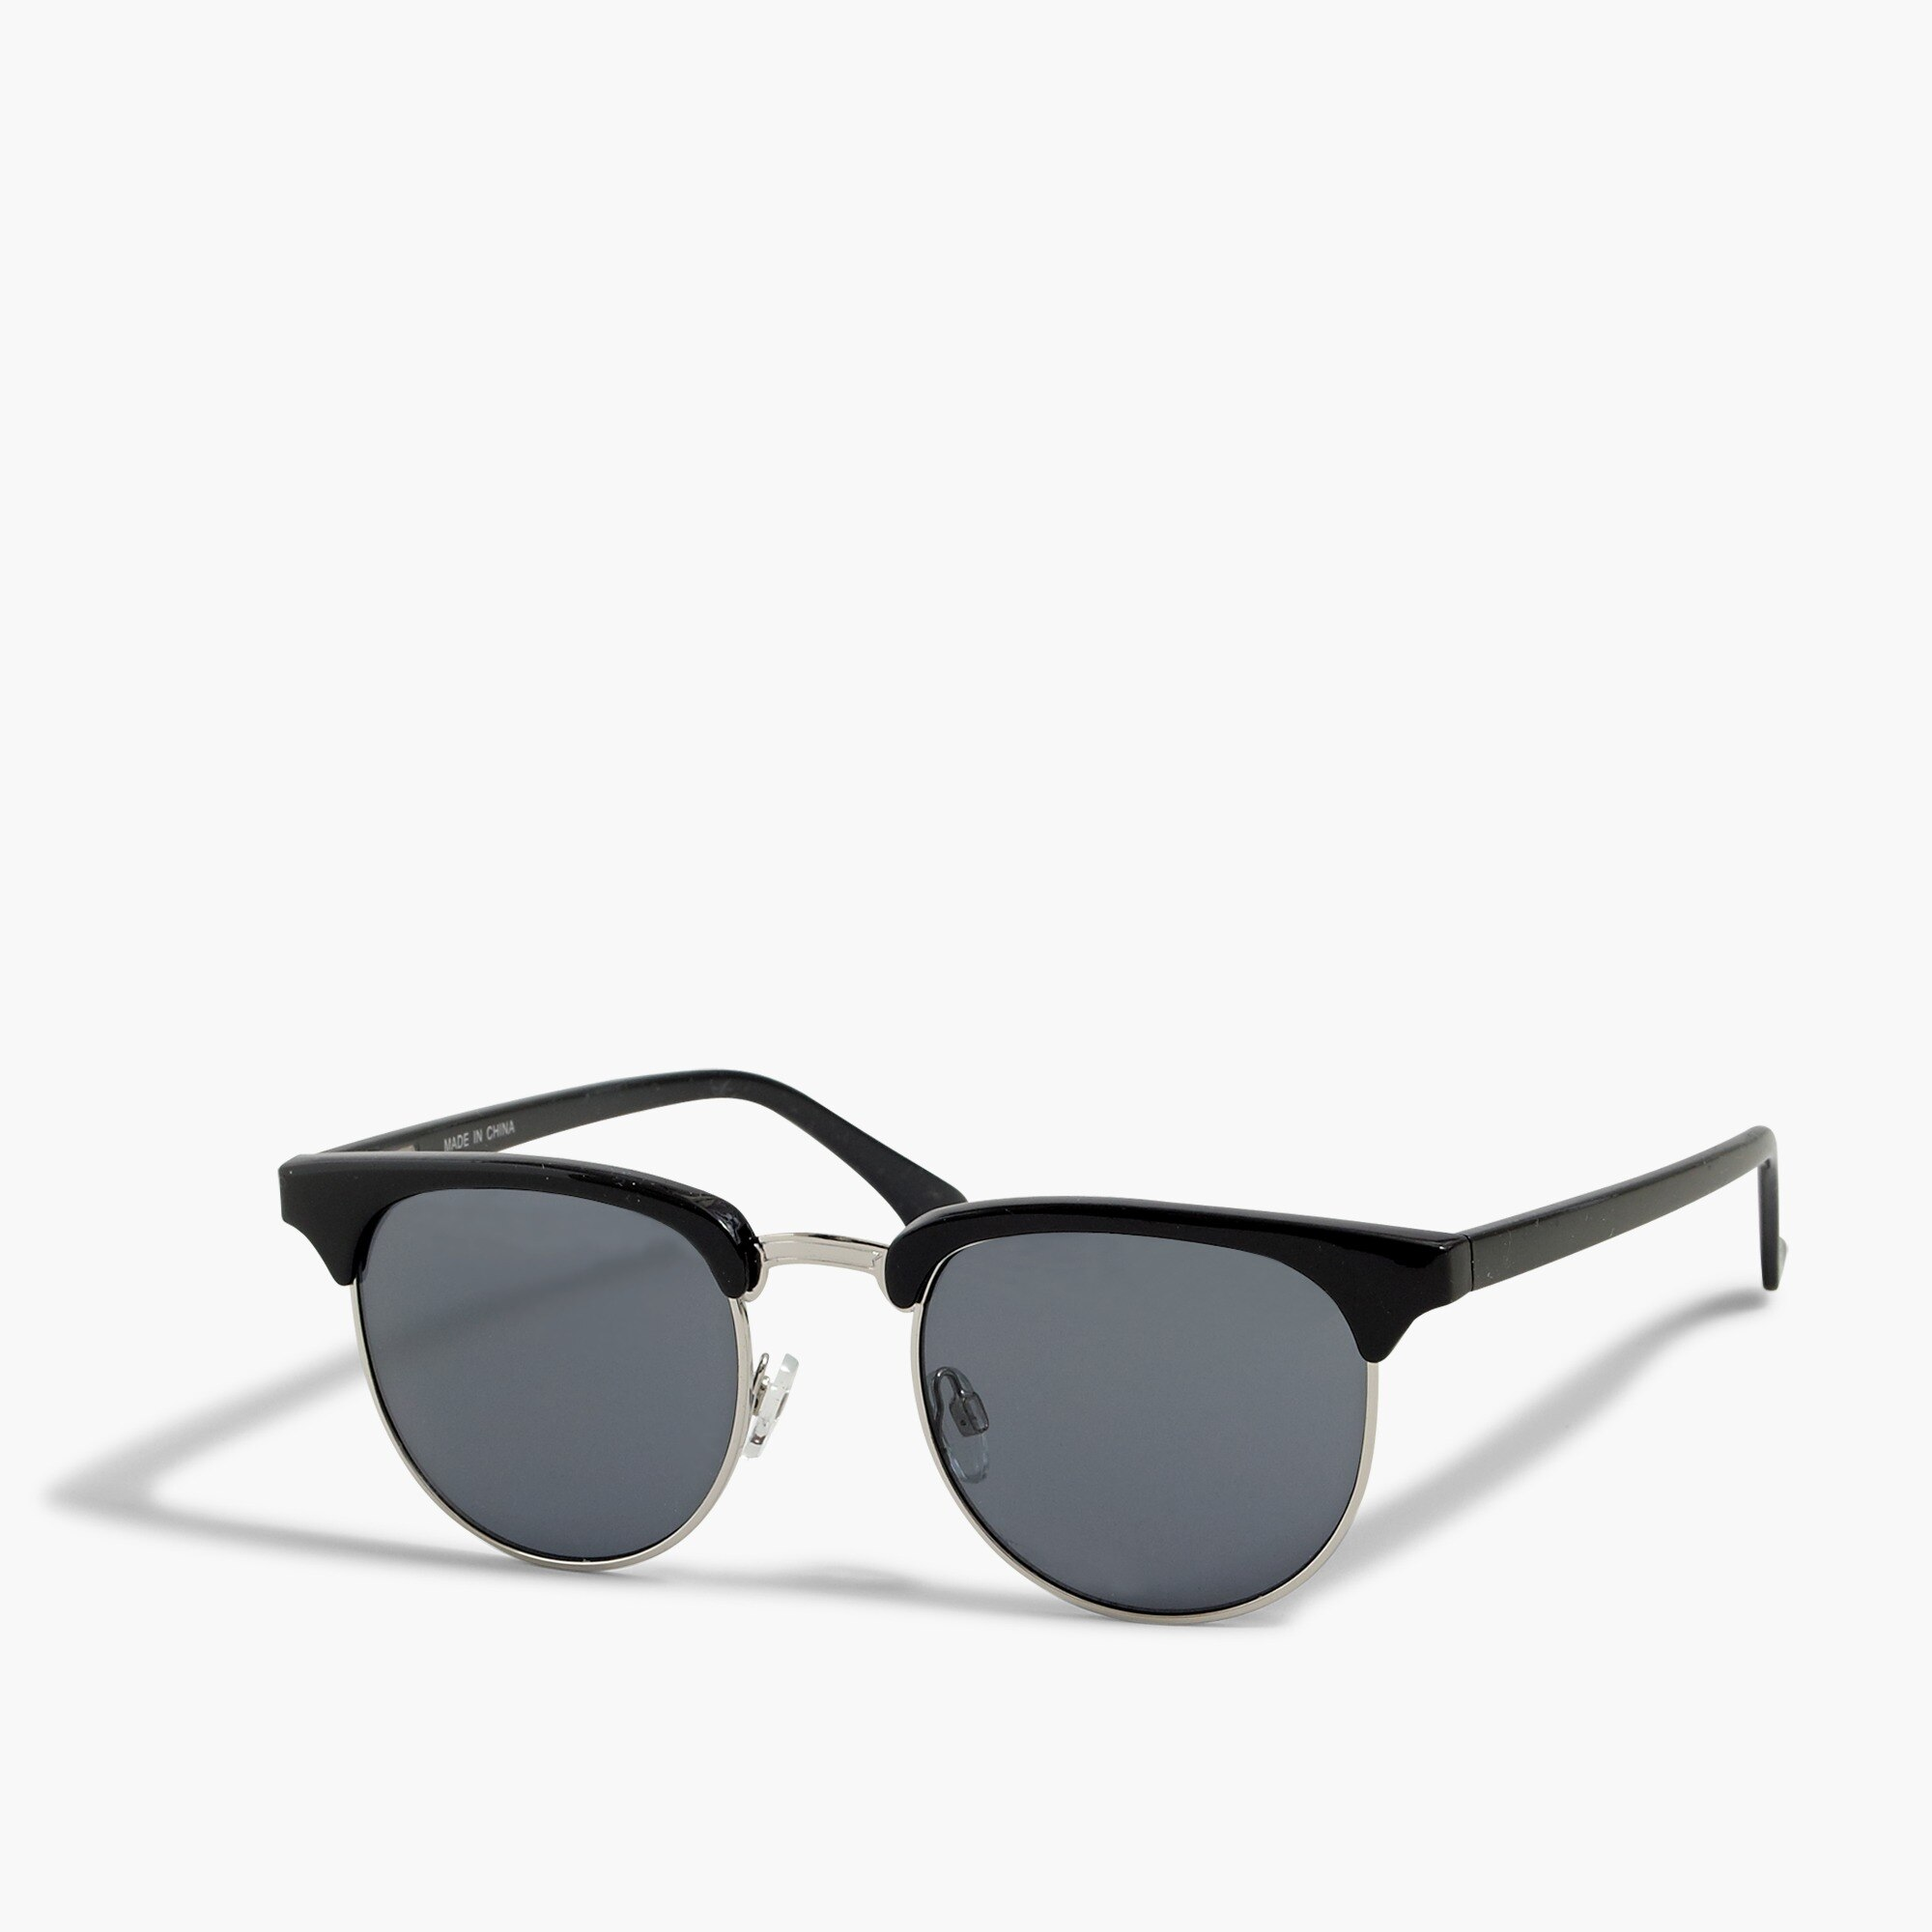 retro frame sunglasses : factorymen sunglasses